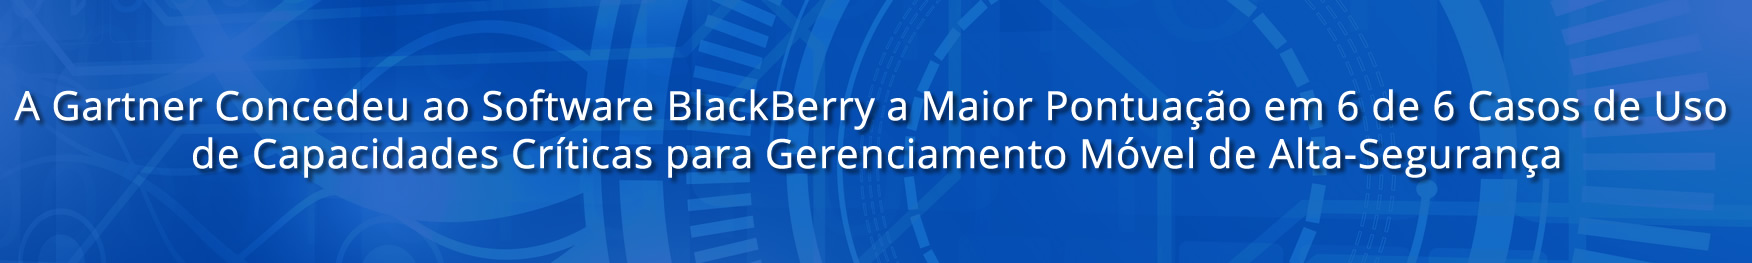 gartner-blackberry-leader